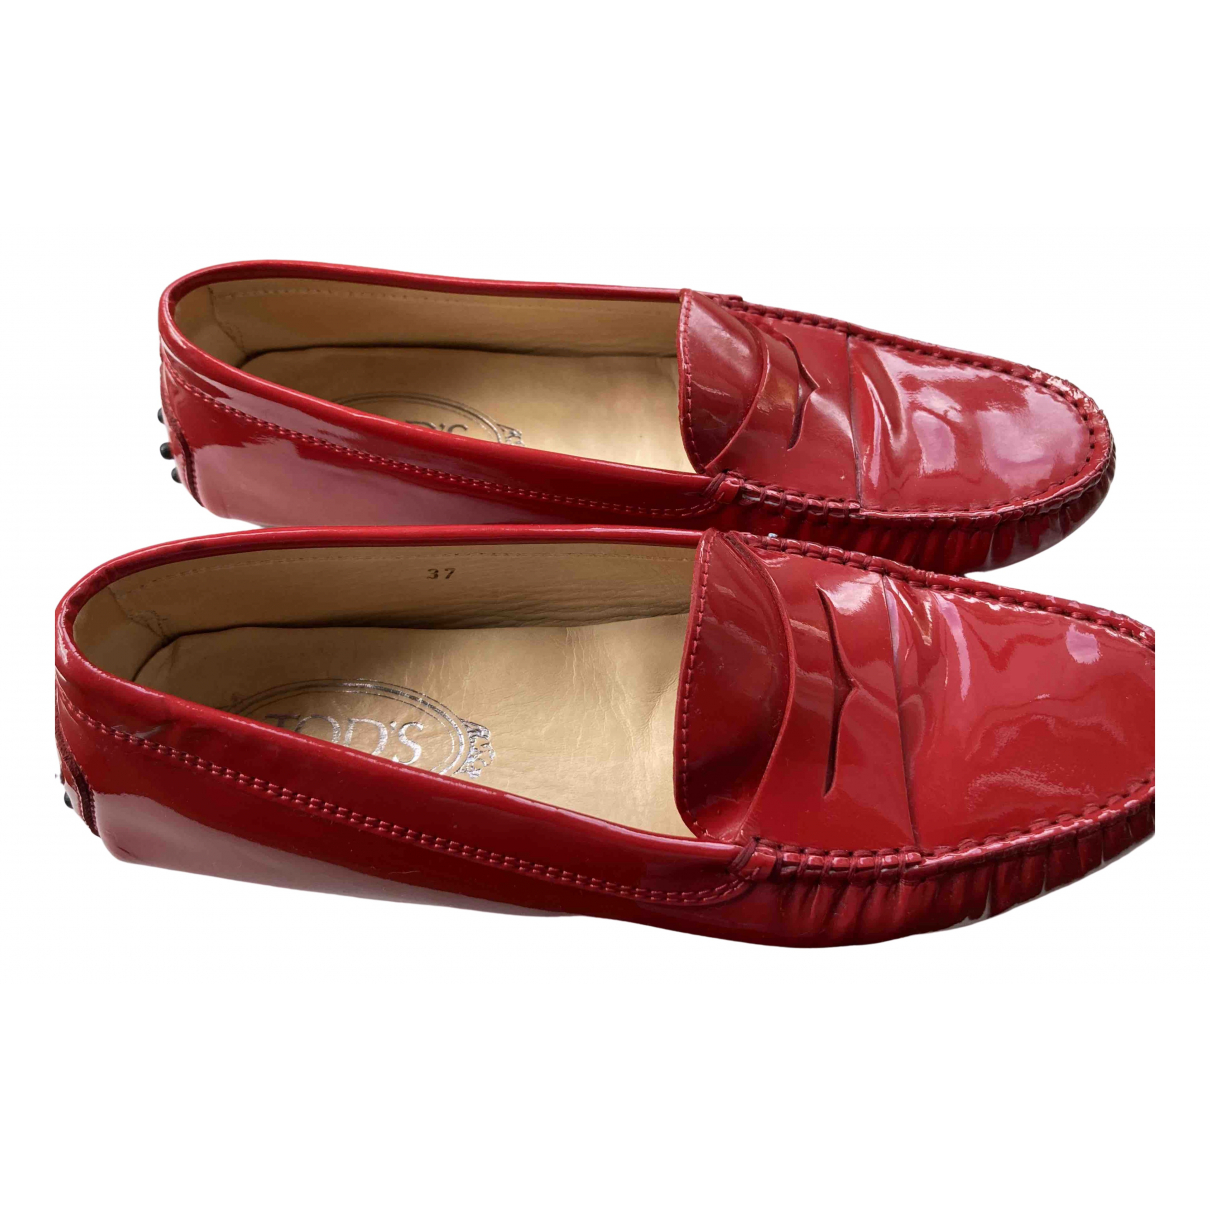 Tod's Gommino Red Patent leather Flats for Women 37 EU